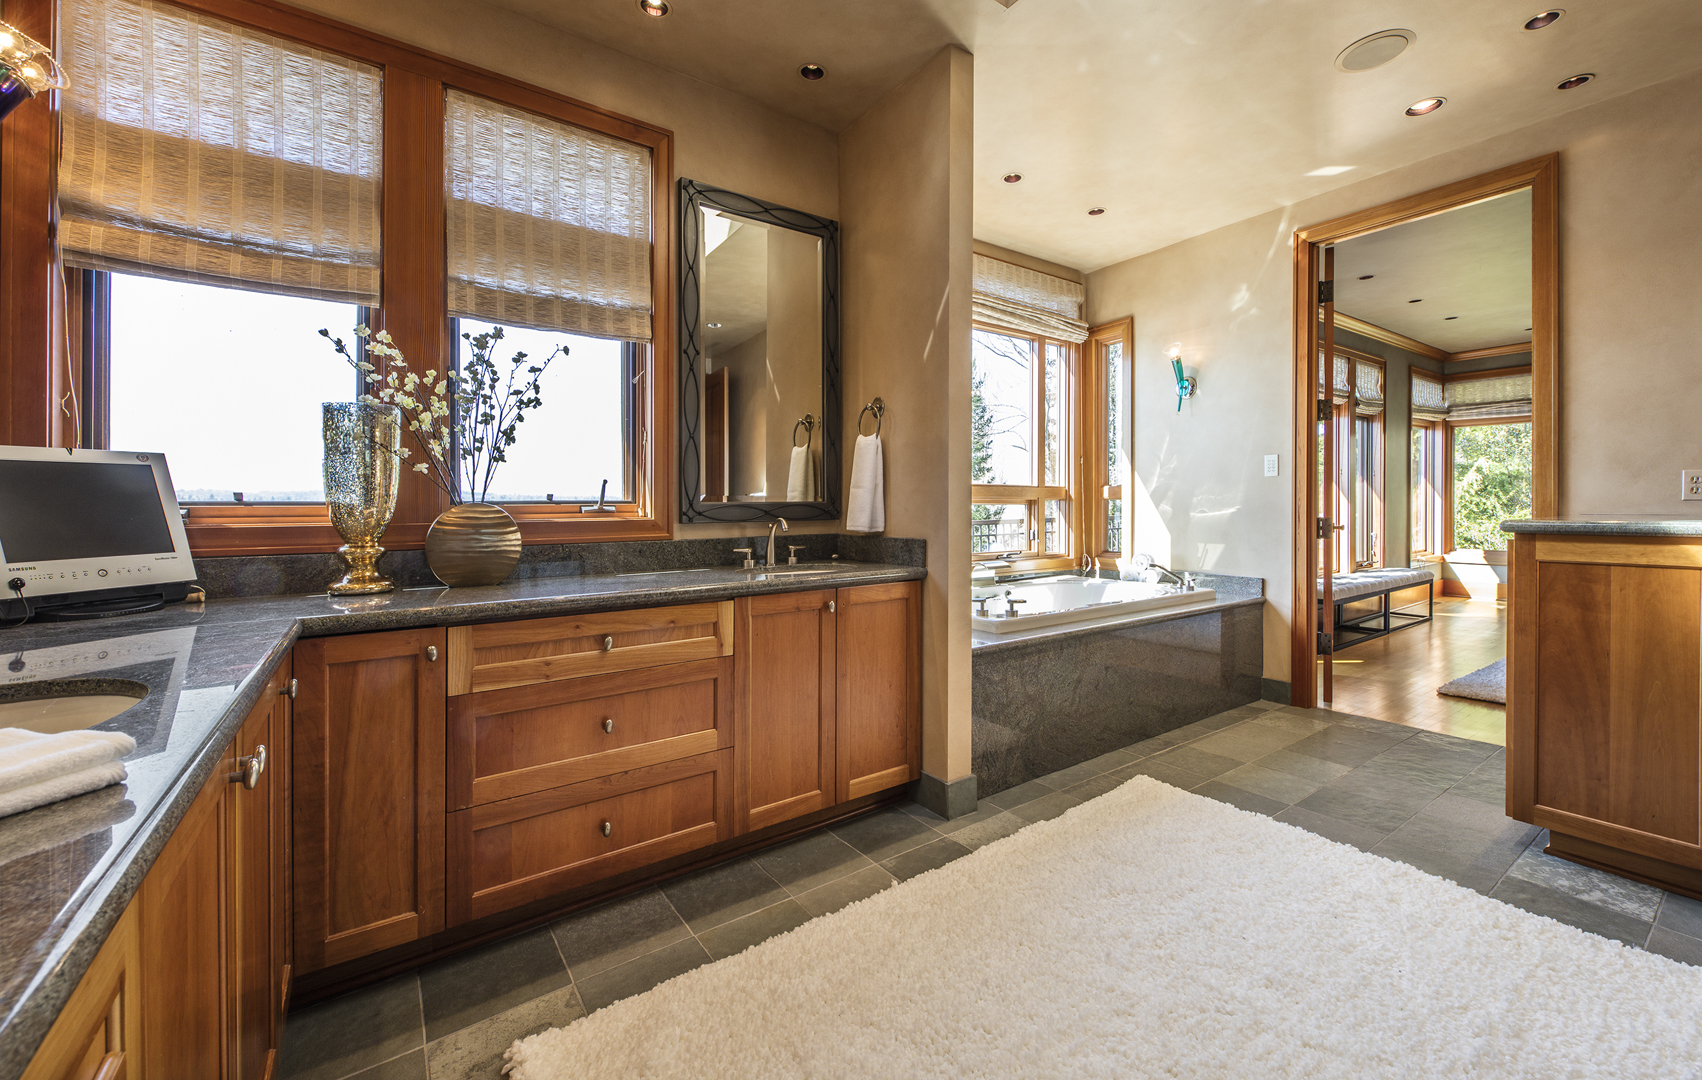 Photo of Master Bathroom in PNW home designed by a Seattle Residential Architect